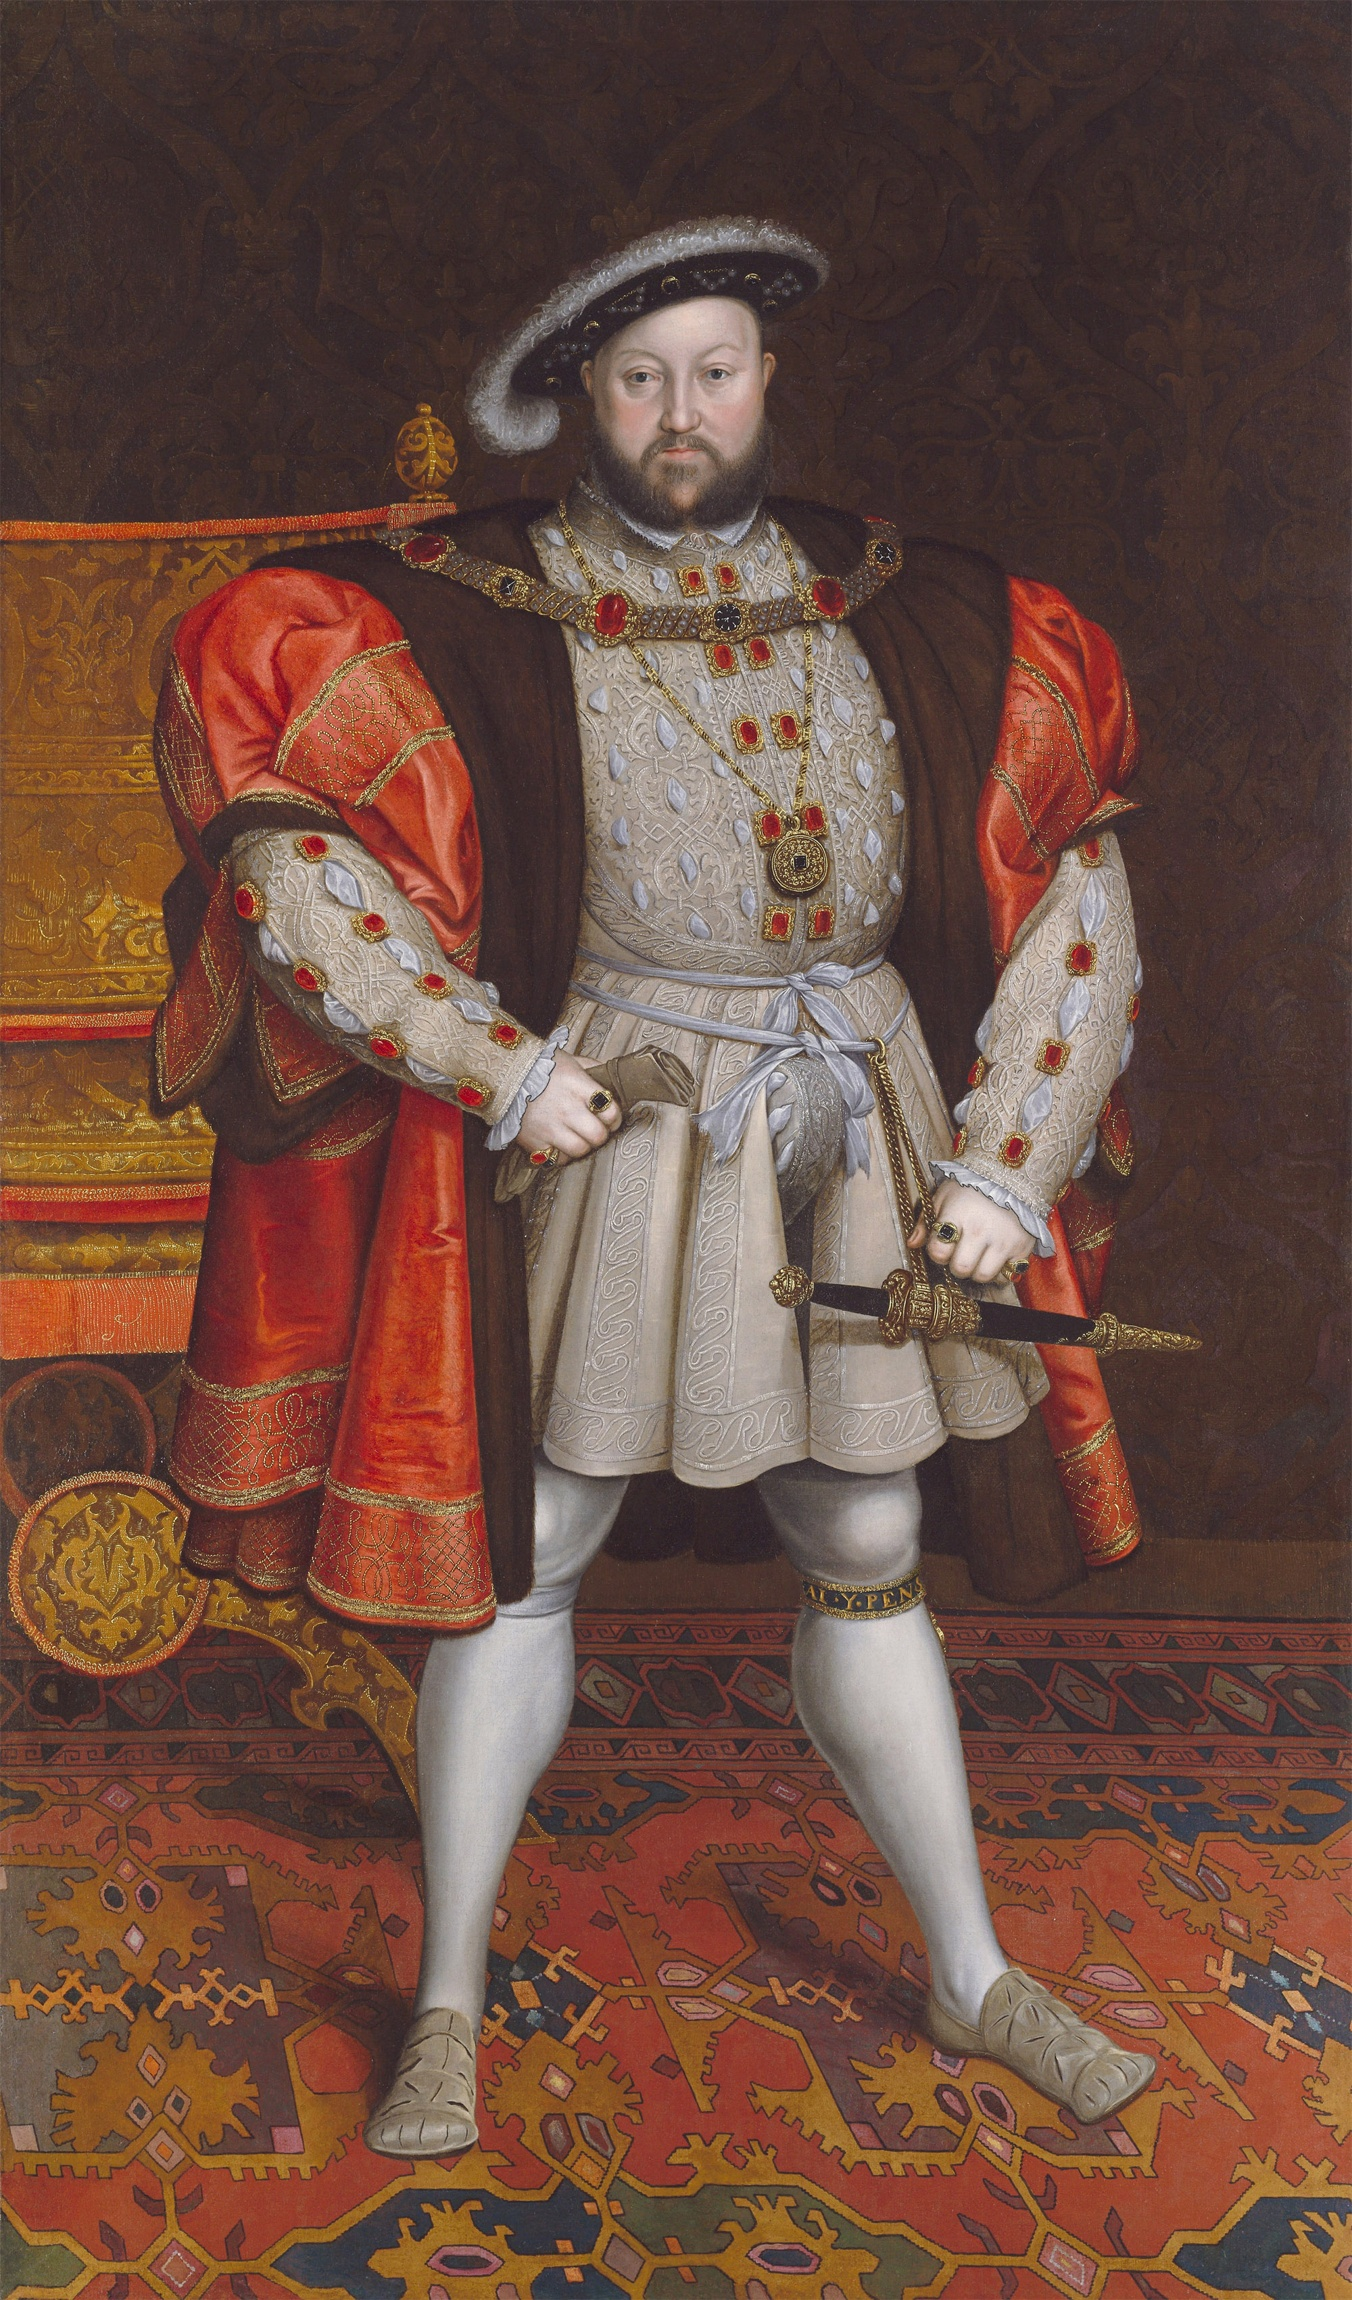 Portrait of Henry VIII of England after Hans Holbein the Younger, originally displayed at Ditchley, Oxfordshire. c.1600